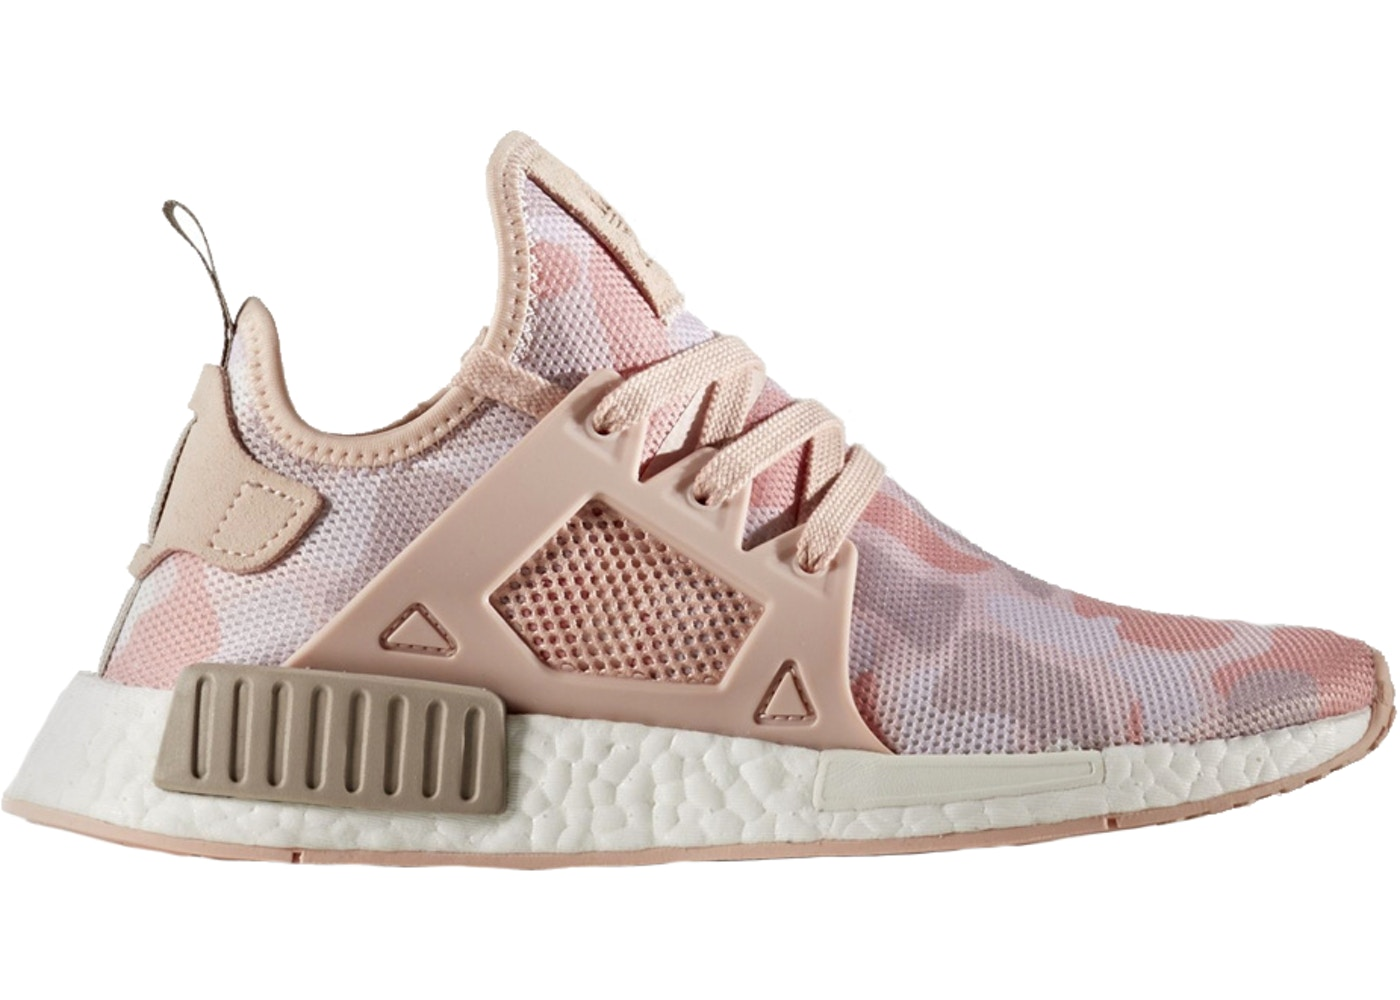 Adidas NMD XR1 Pink duck Camouflage NWT